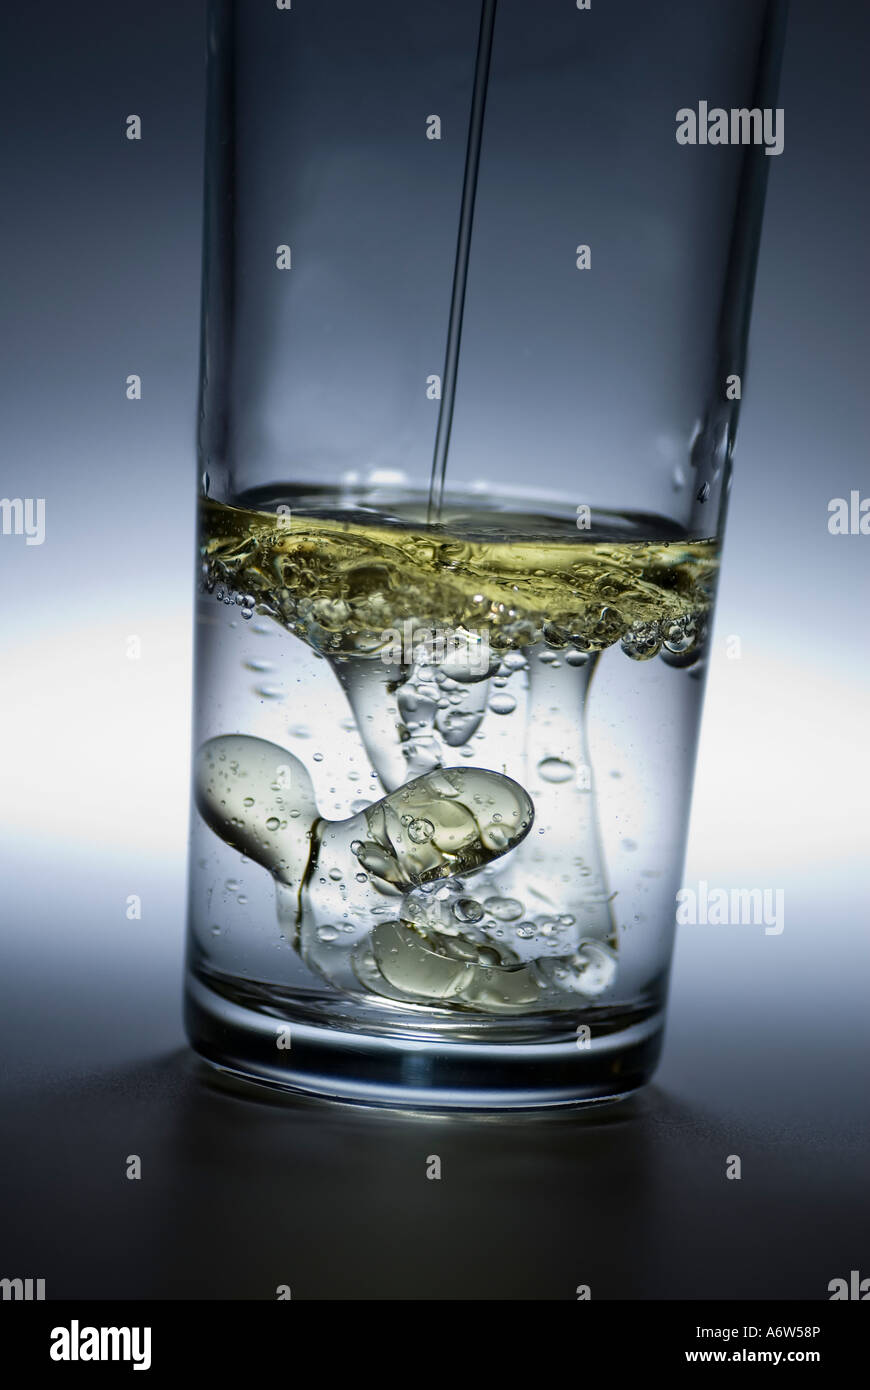 Oil poured in glass of water Stock Photo